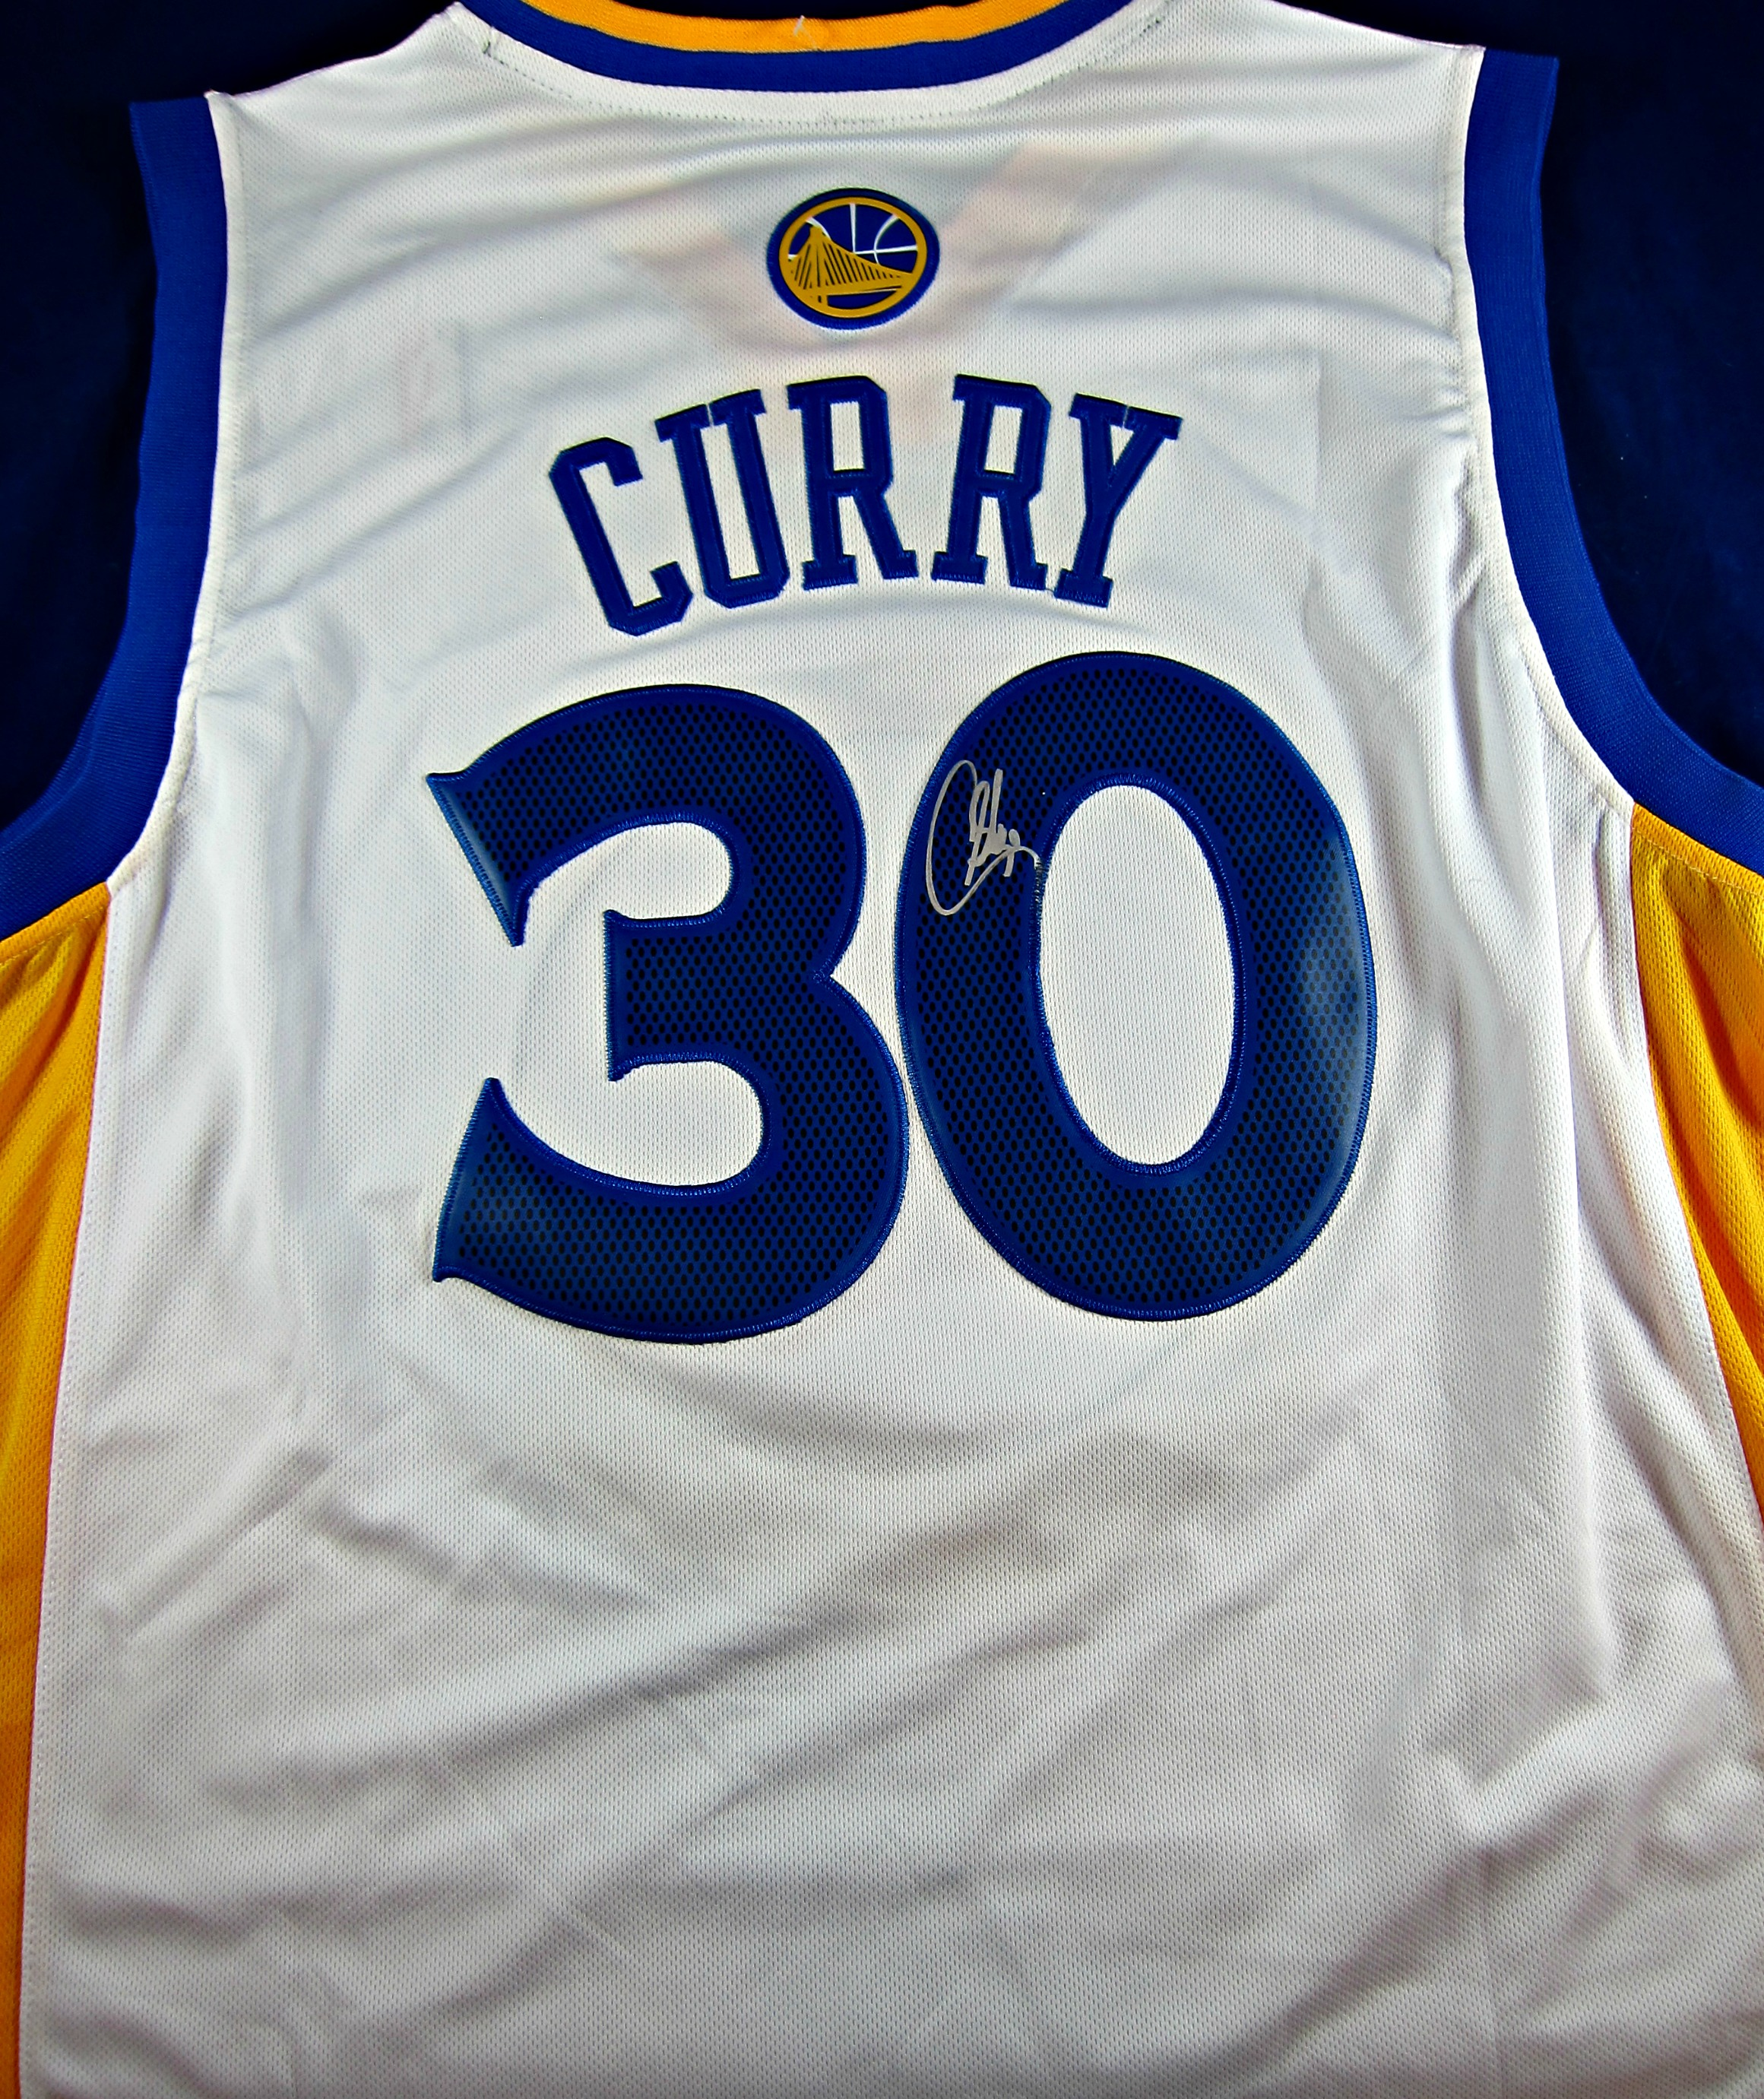 9fdd770717f7 Stephen Curry Autographed Golden State Warriors Jersey. 🔍. Stephen Curry